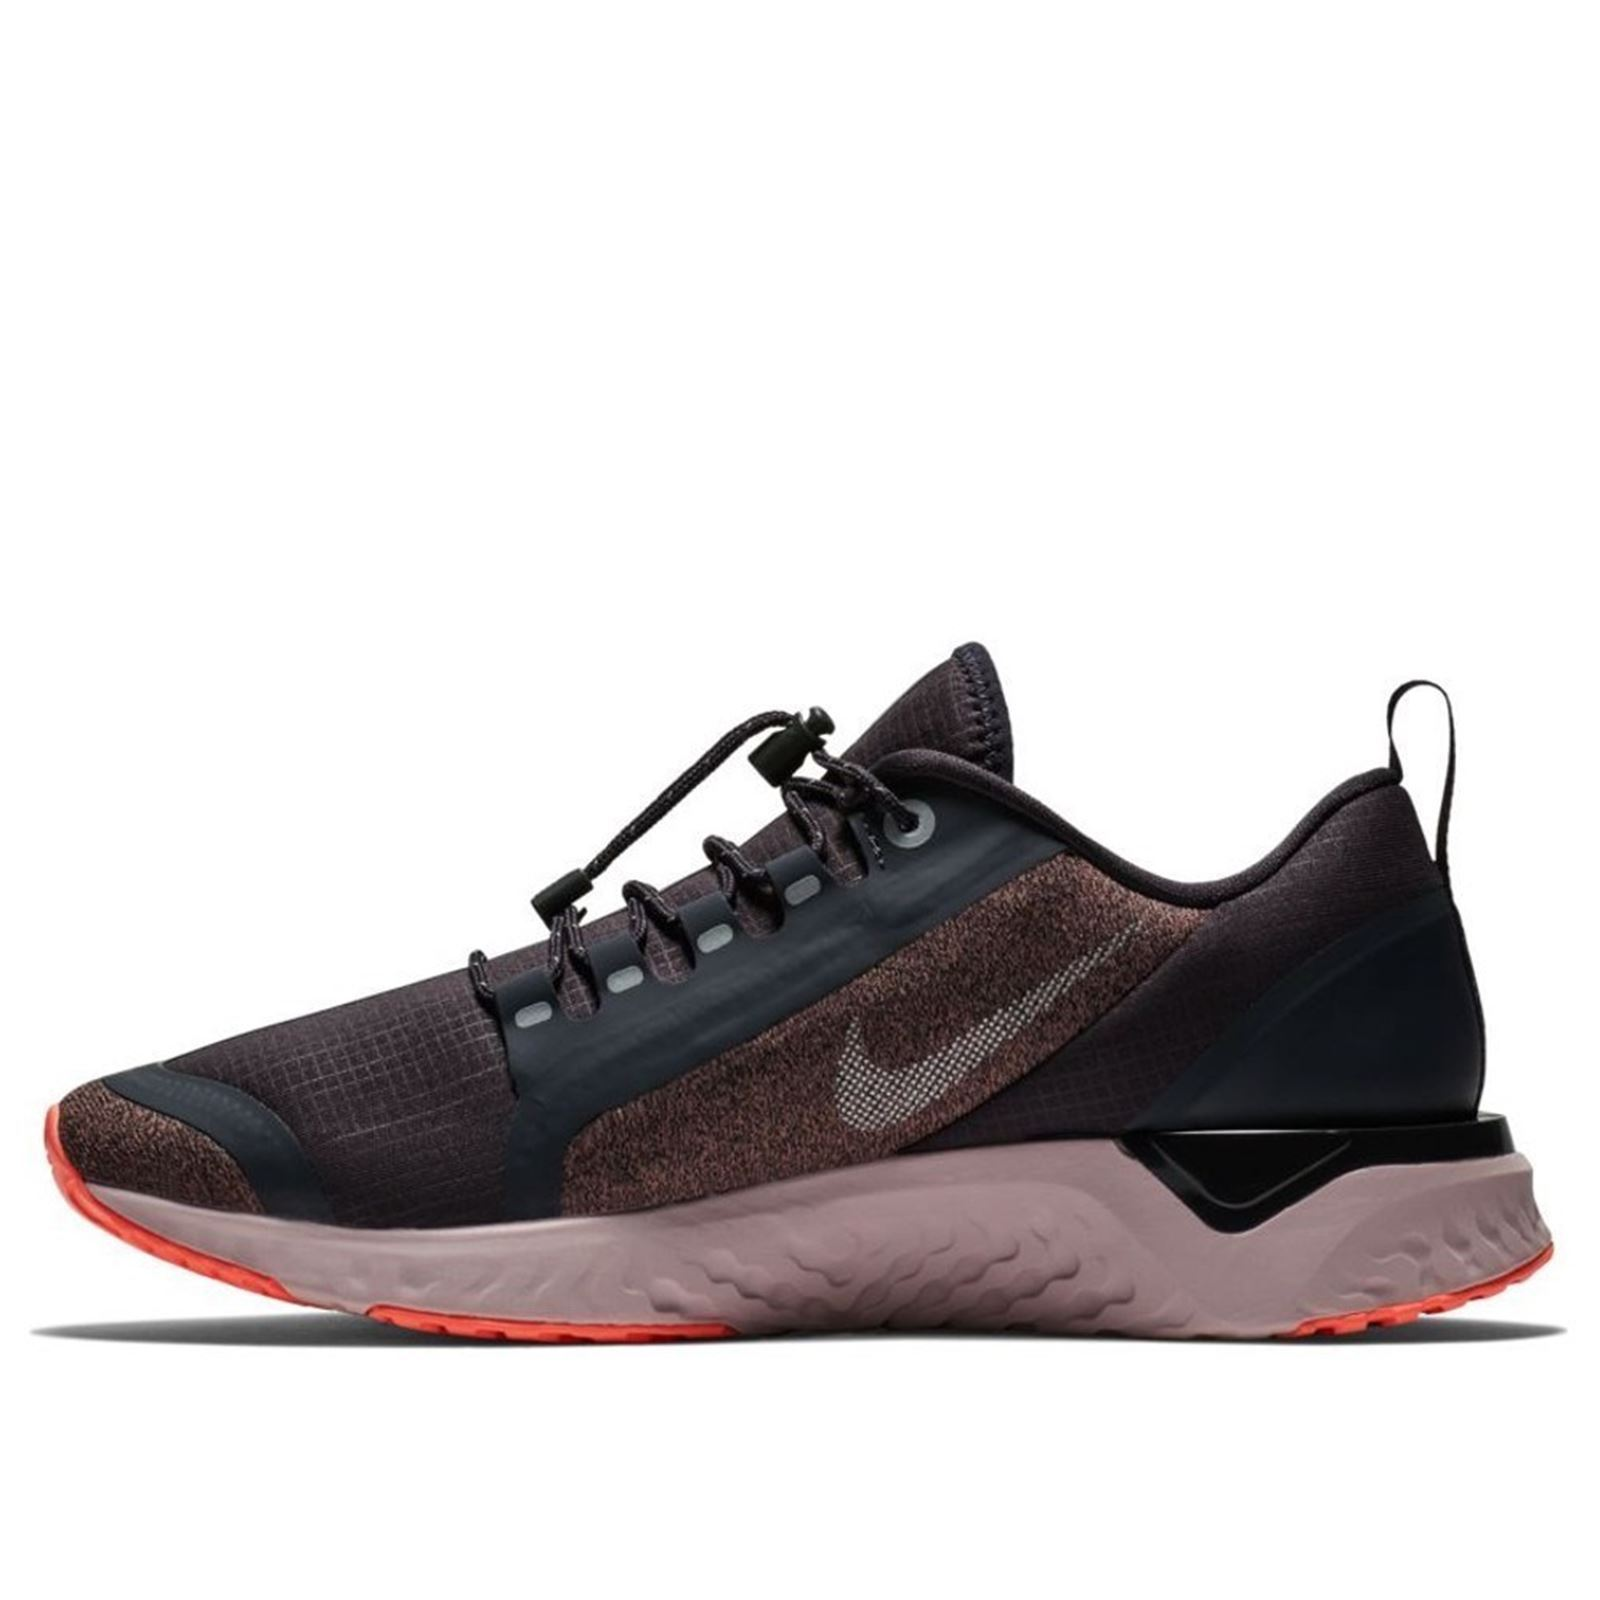 super popular 7b907 3194a NIKE Odyssey React Shield Water Repellent - Chaussures de running -  multicolore